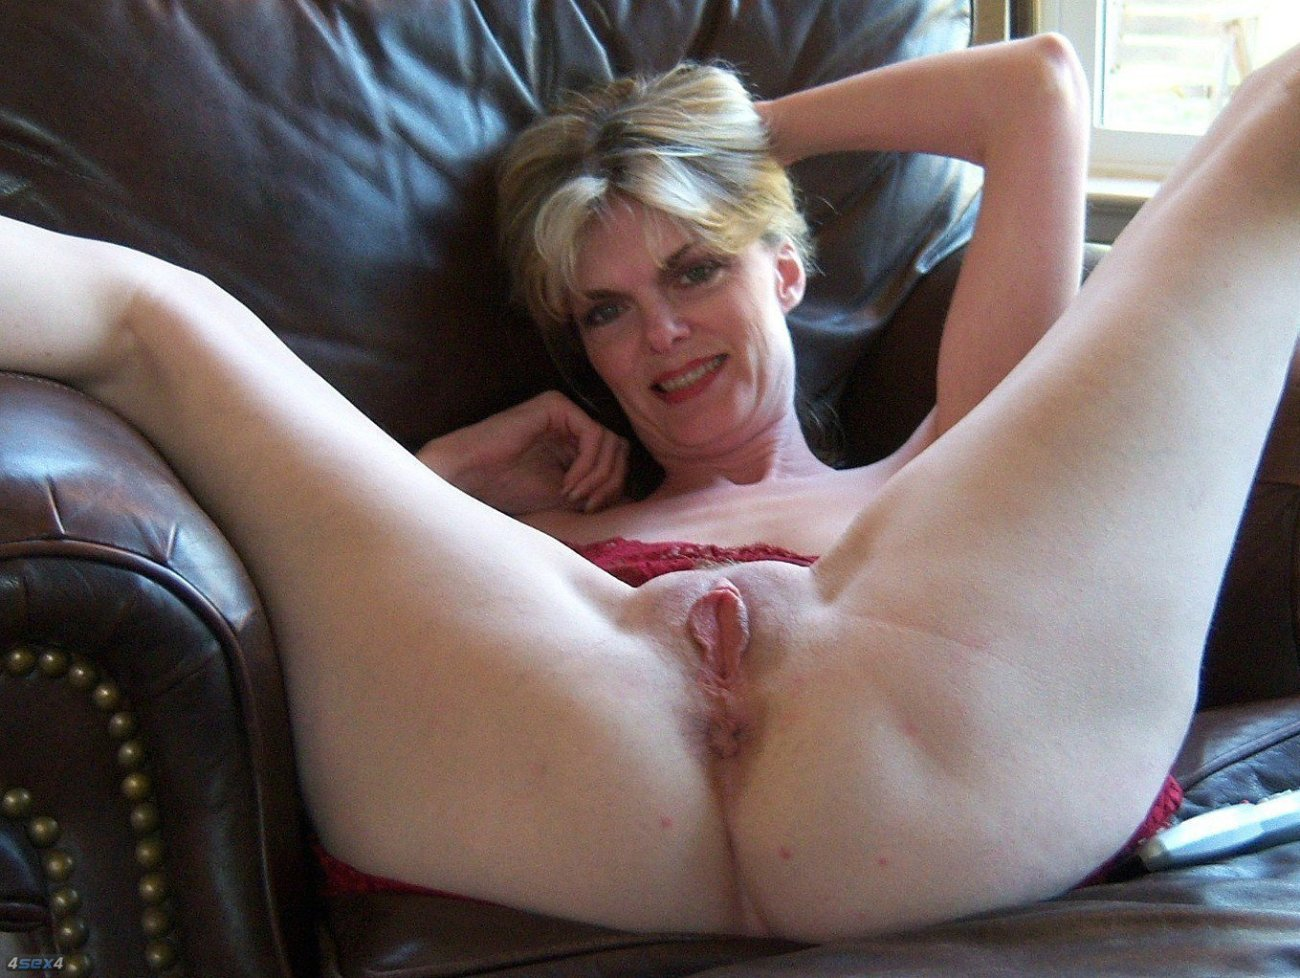 Naked Older Woman With Glasses Puts Cd On Her Shaved Pussy